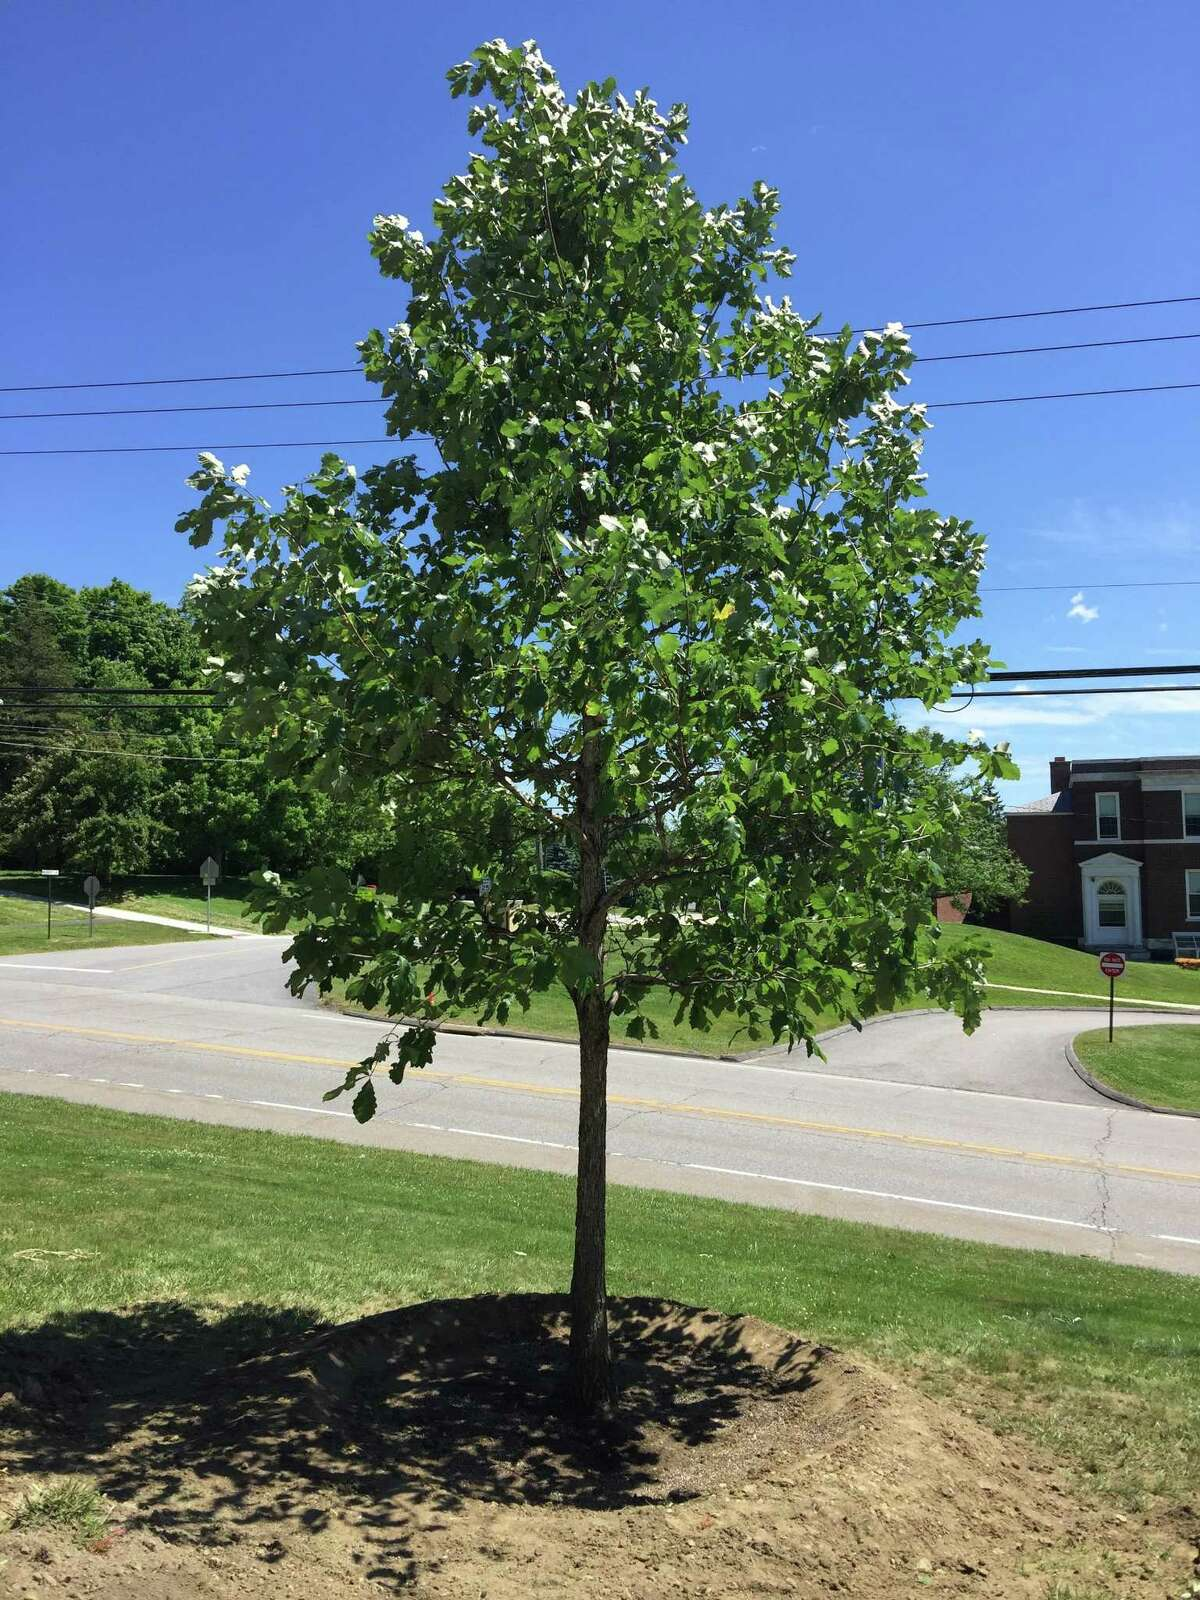 Kent Greenhouse landscapers recently planted new trees on West STreet, thanks to grants and funding from the Litchfield Garden Club.